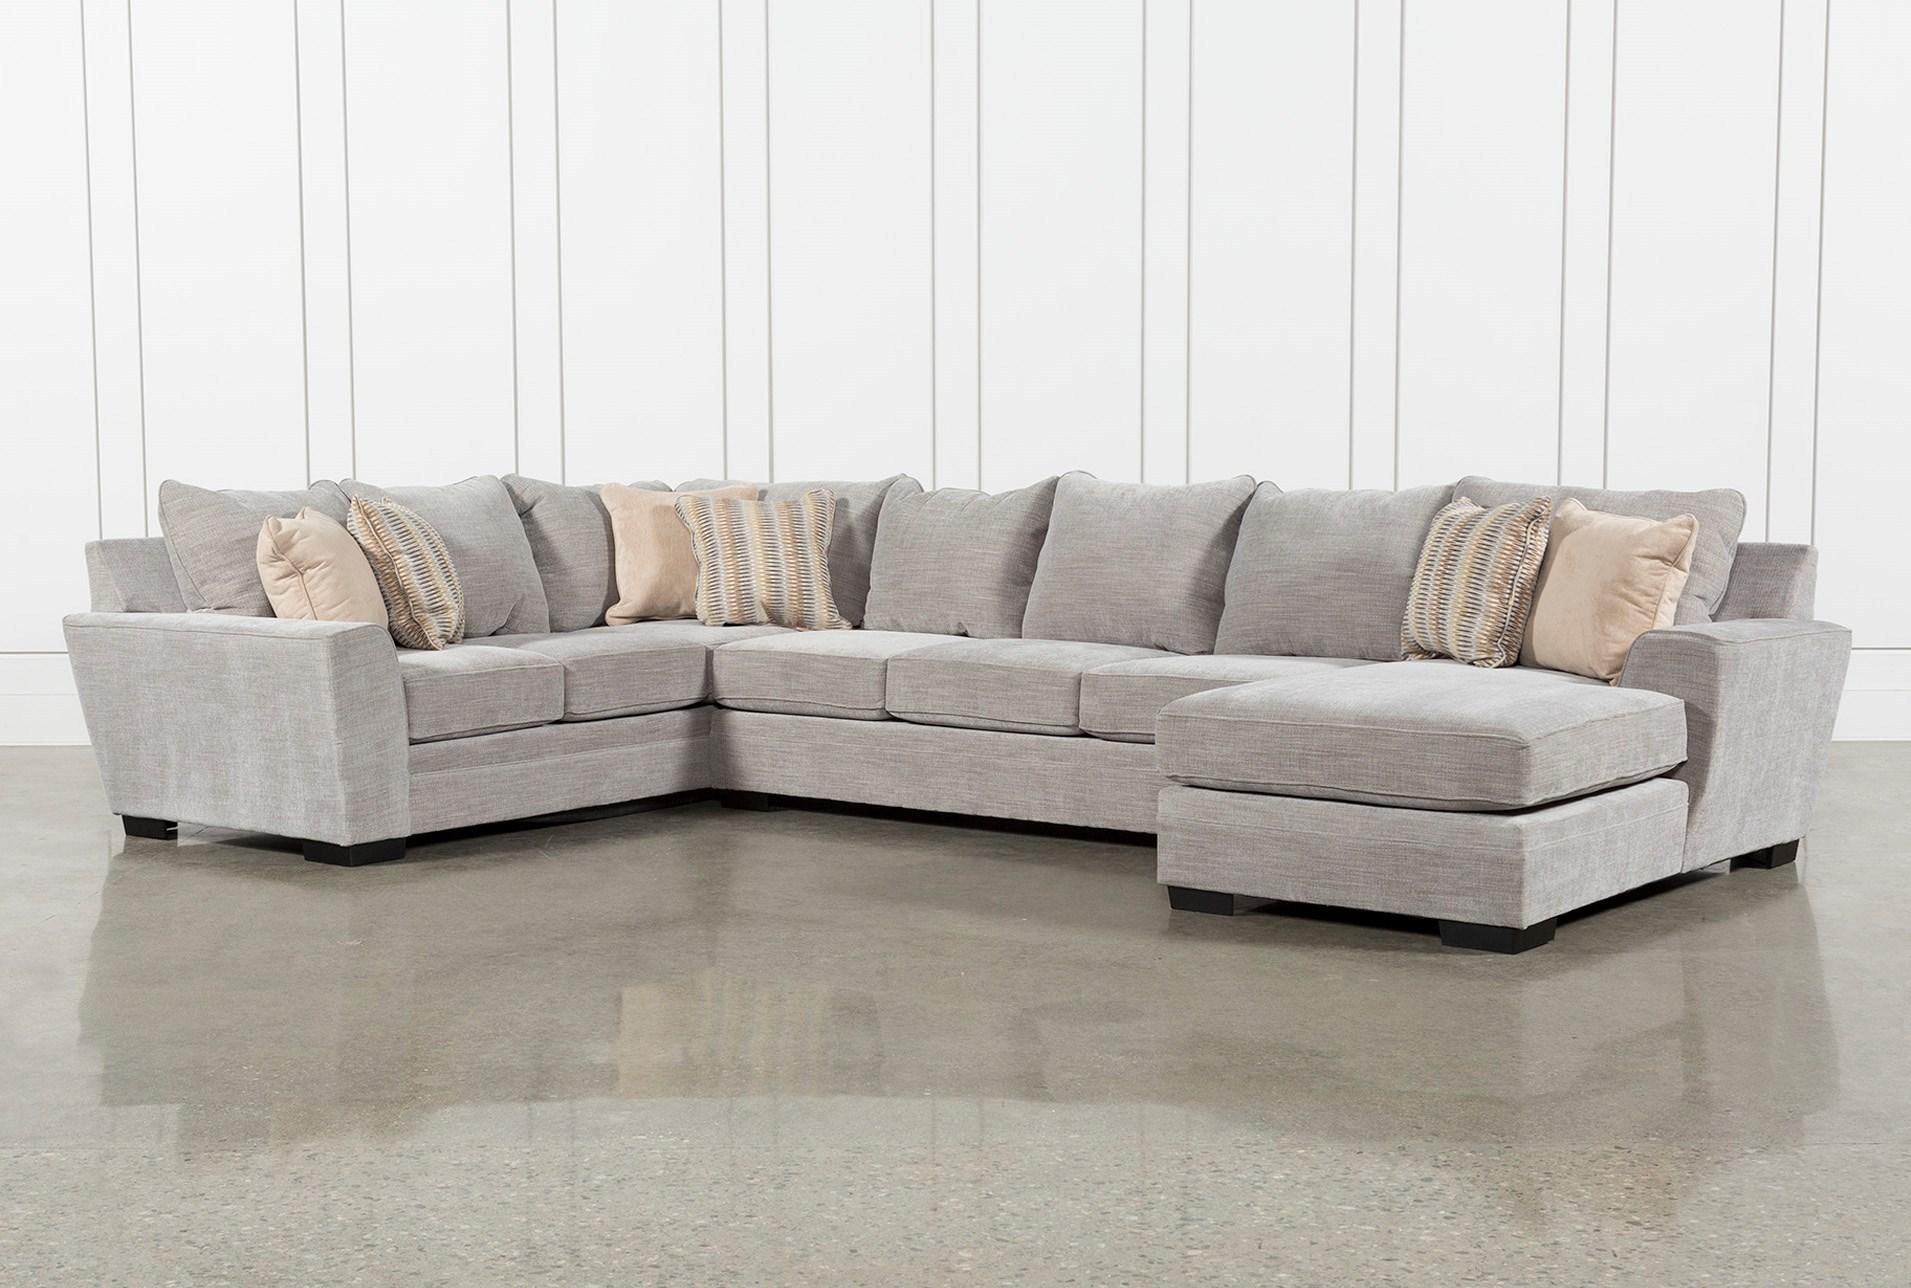 You Can Enjoy More Of Our Bestselling Delano Collection Thanks To This New 3 Piece Sectional P Shabby Chic Room Shabby Chic Living Room Fabric Sectional Couch